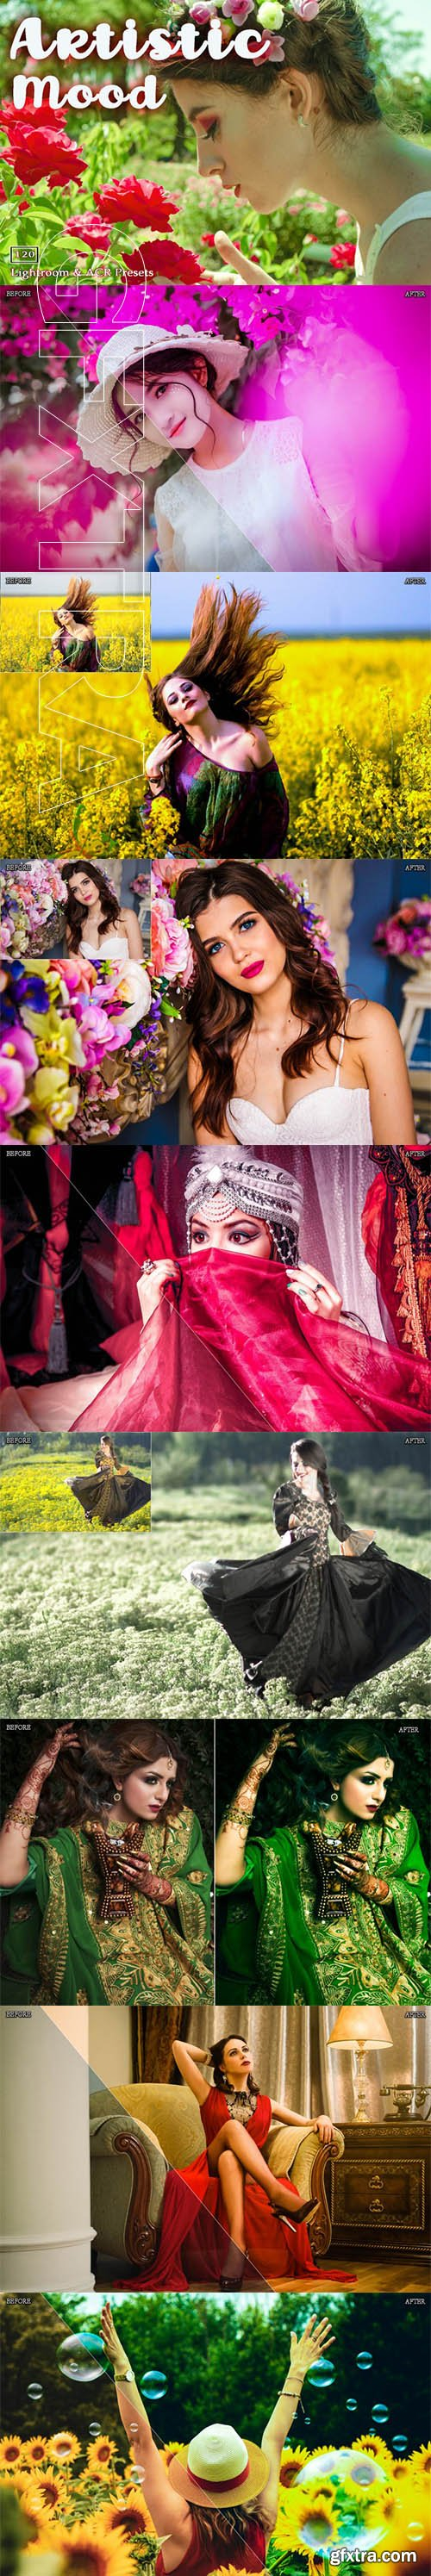 Artistic Lr and ACR Presets